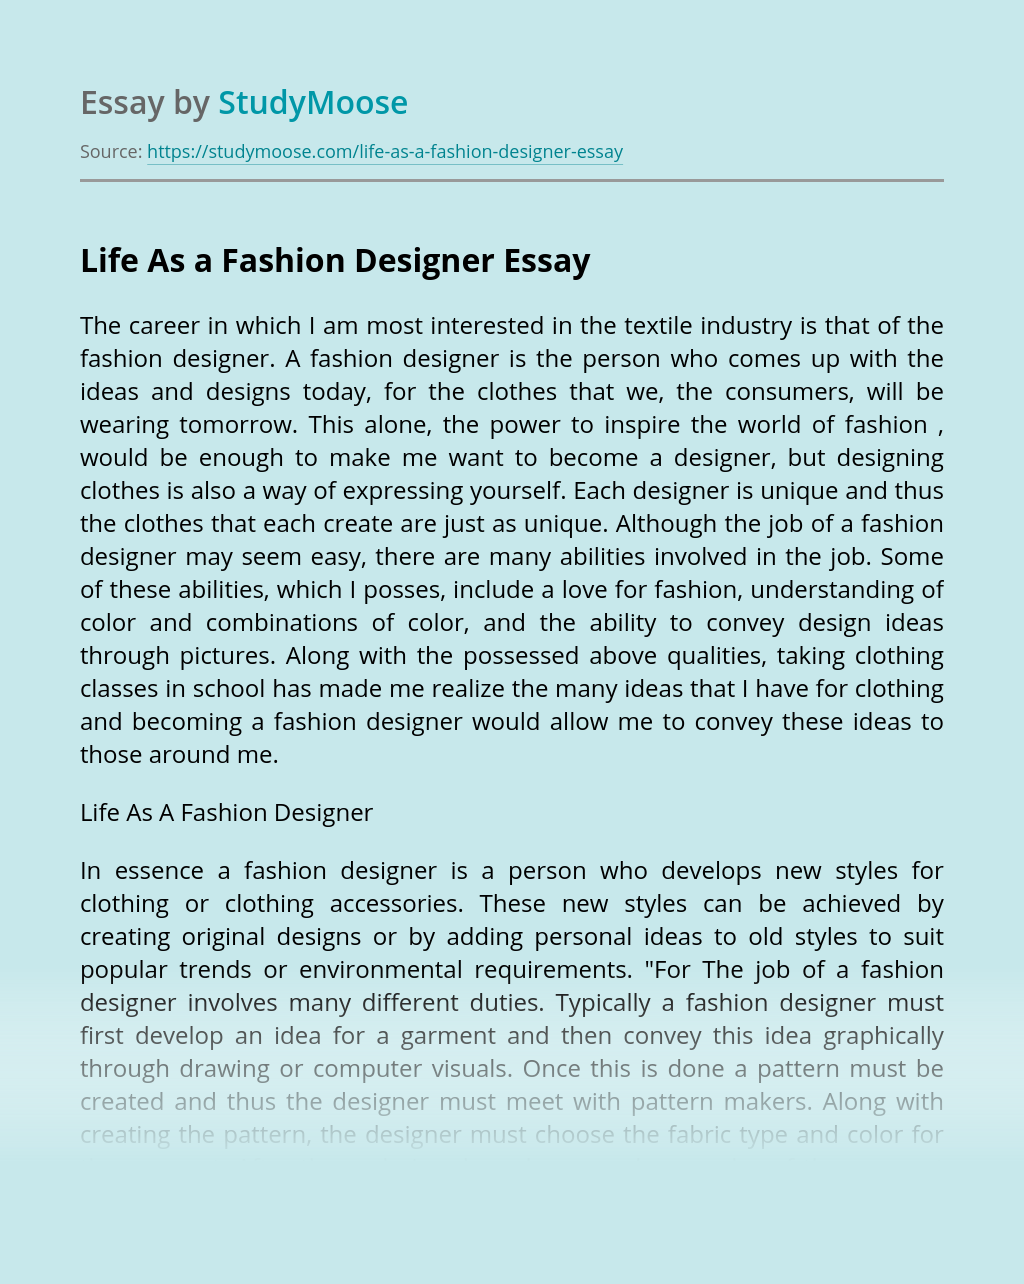 Life As A Fashion Designer Free Essay Example